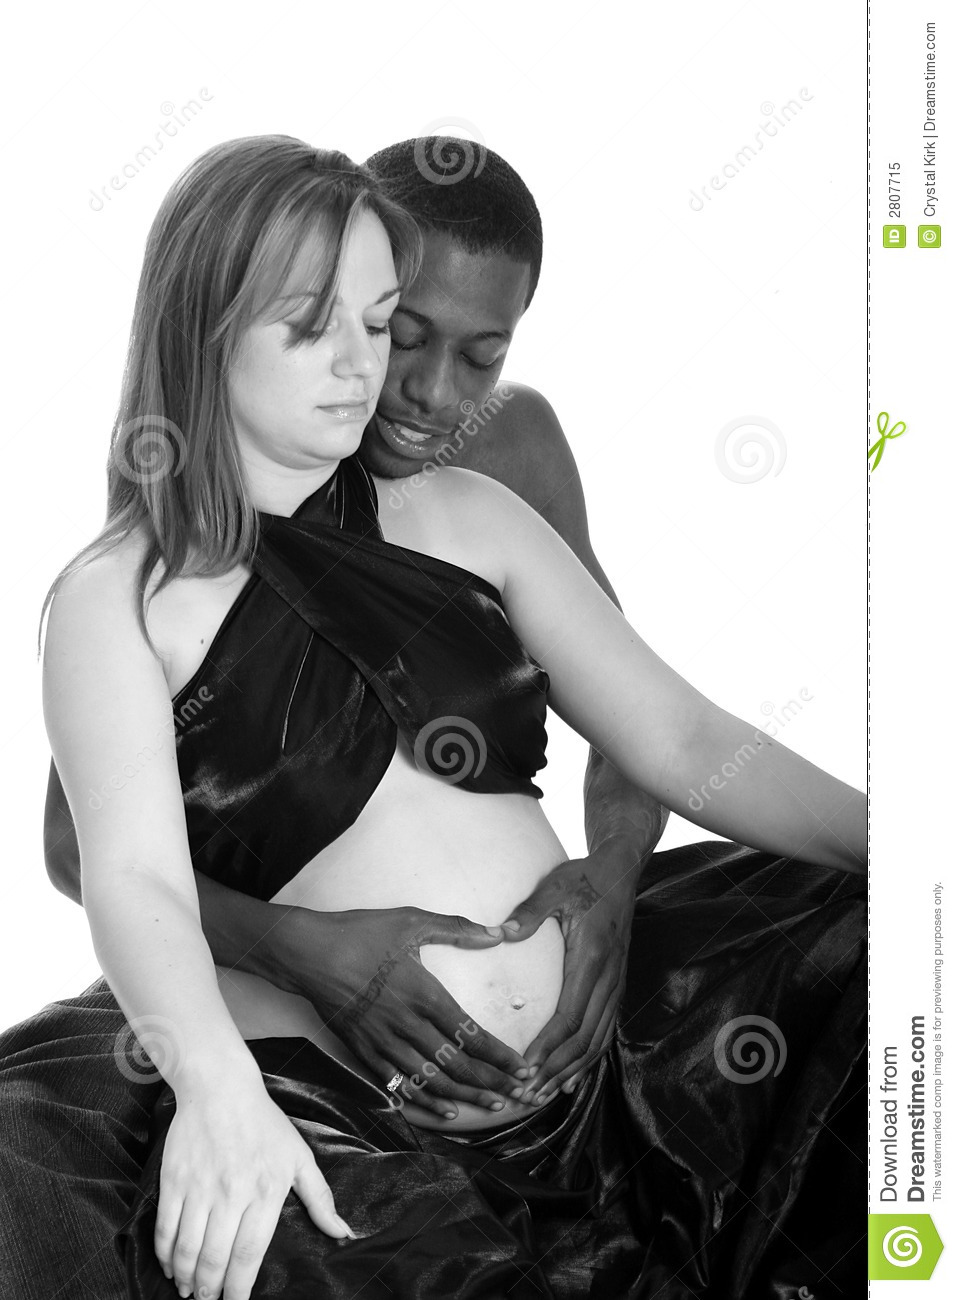 Free Interracial Black Photos 37